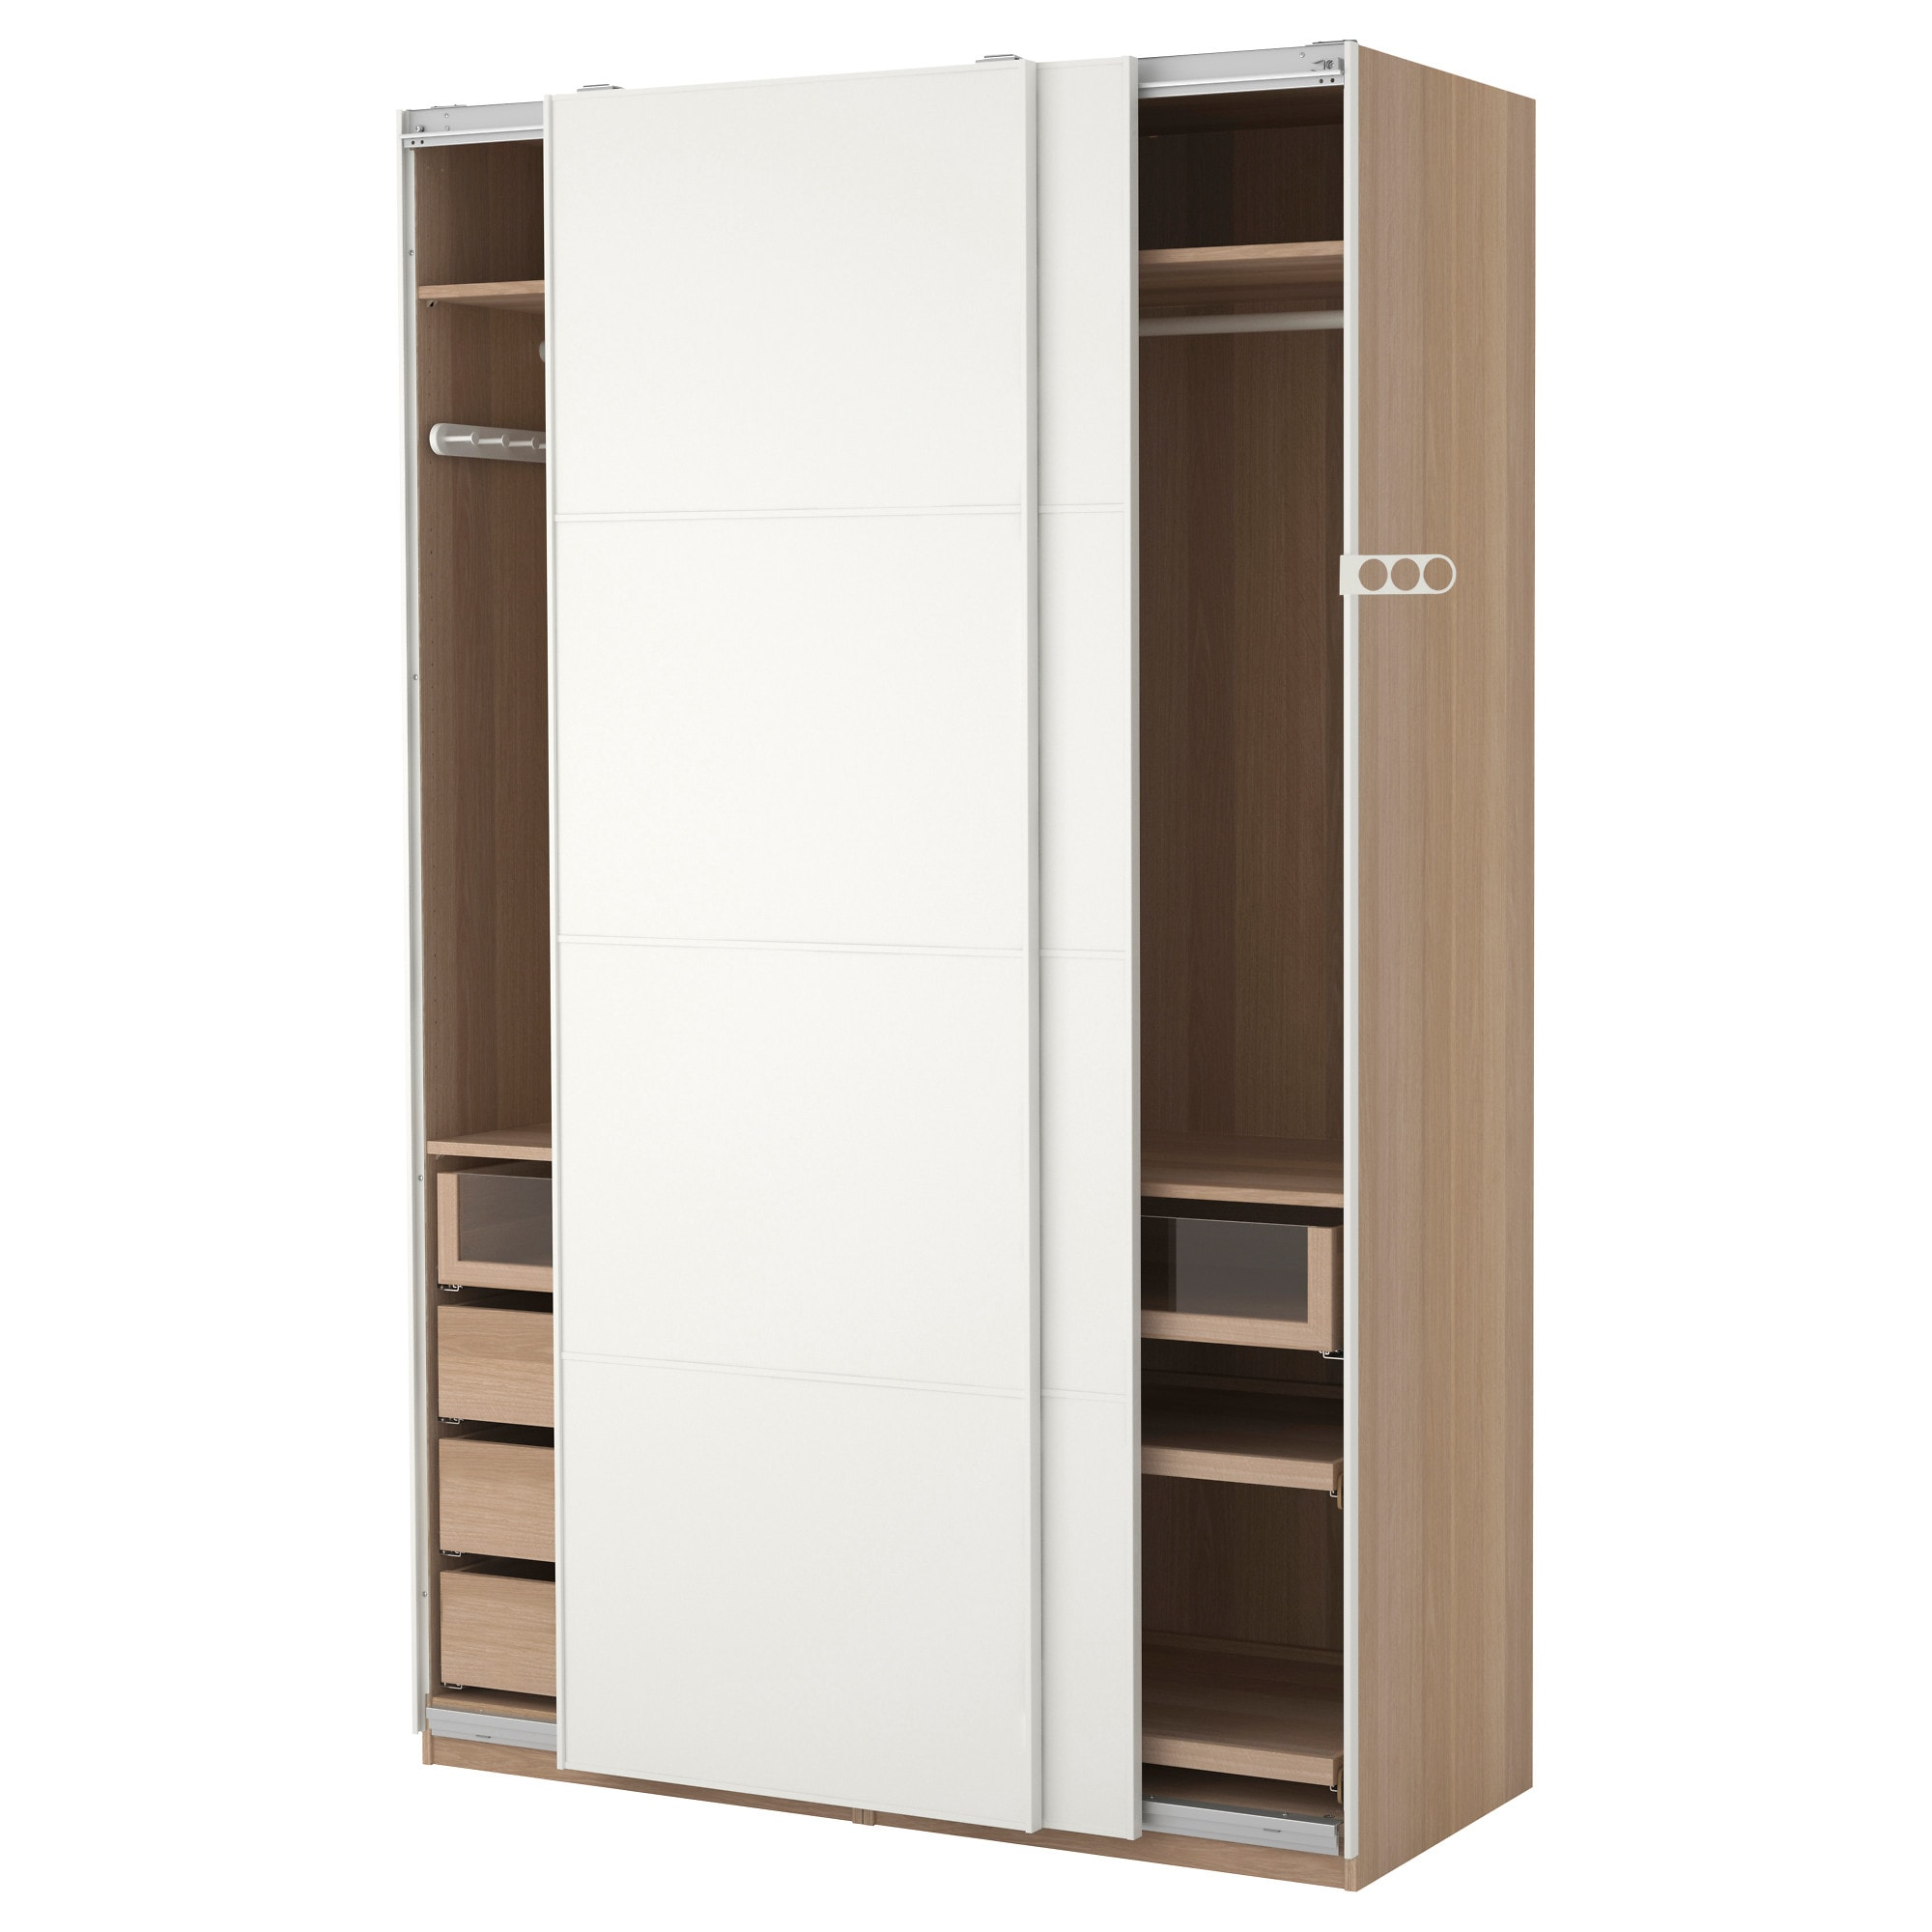 Armoire dressing ikea images - Porte coulissante dressing ikea ...